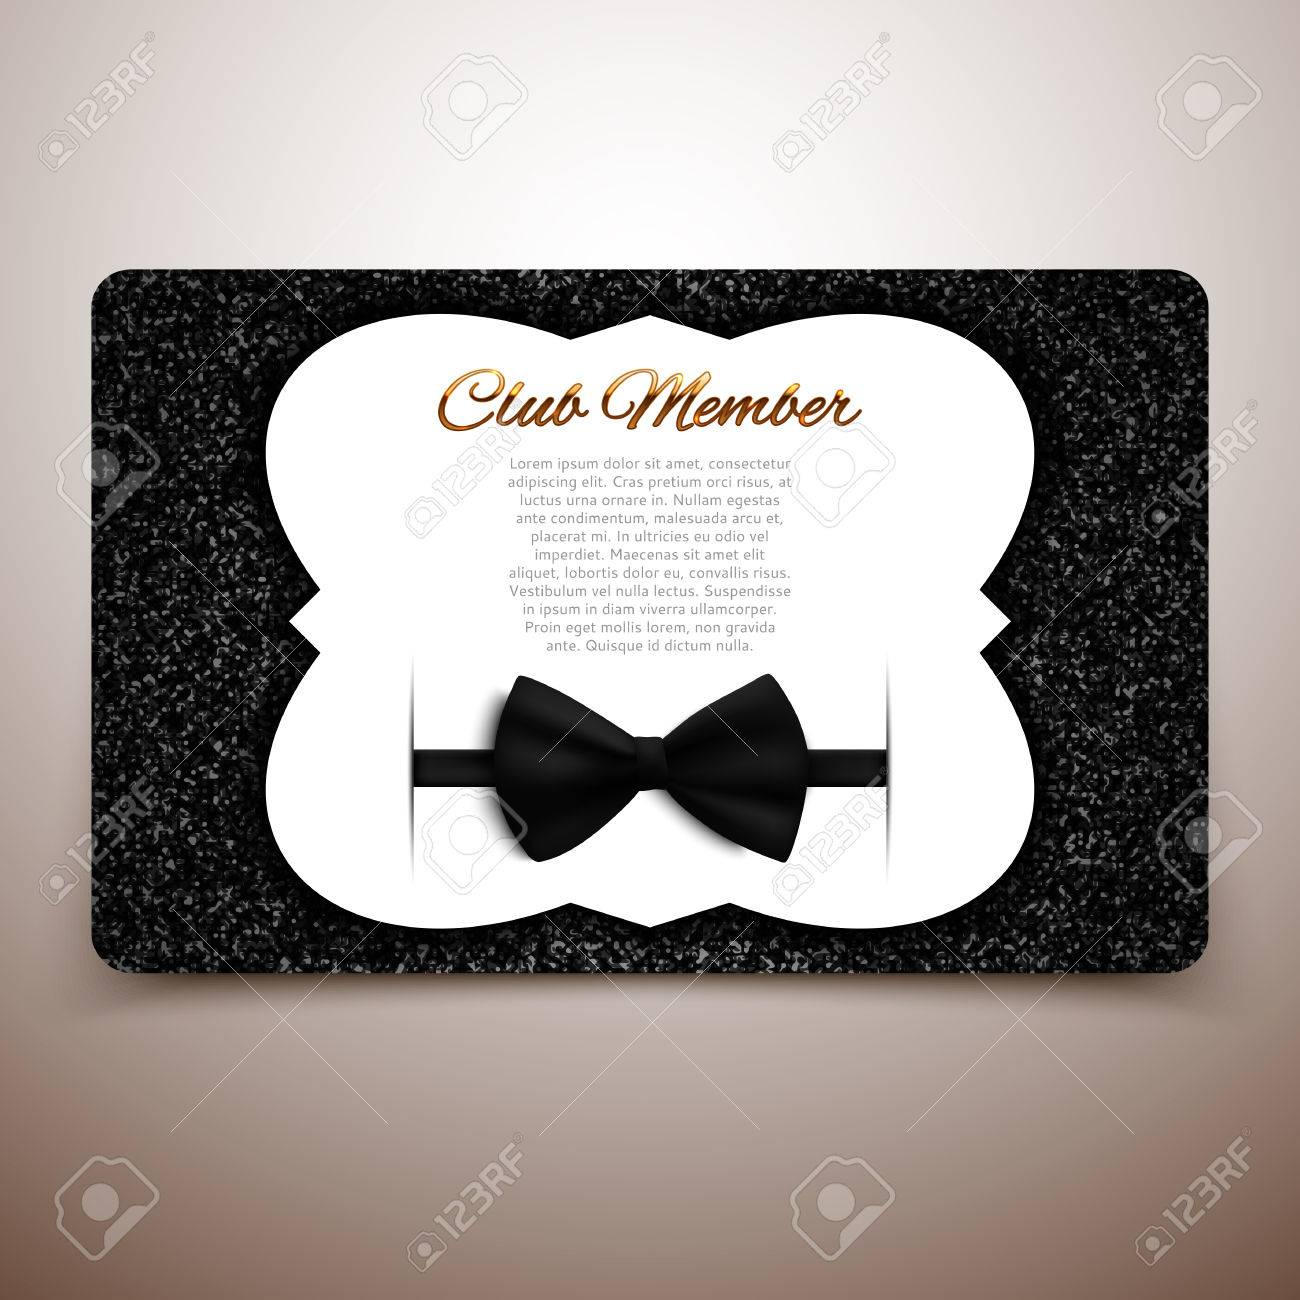 Doc Club Membership Card Template Doc585403 Club Membership – Club Membership Template